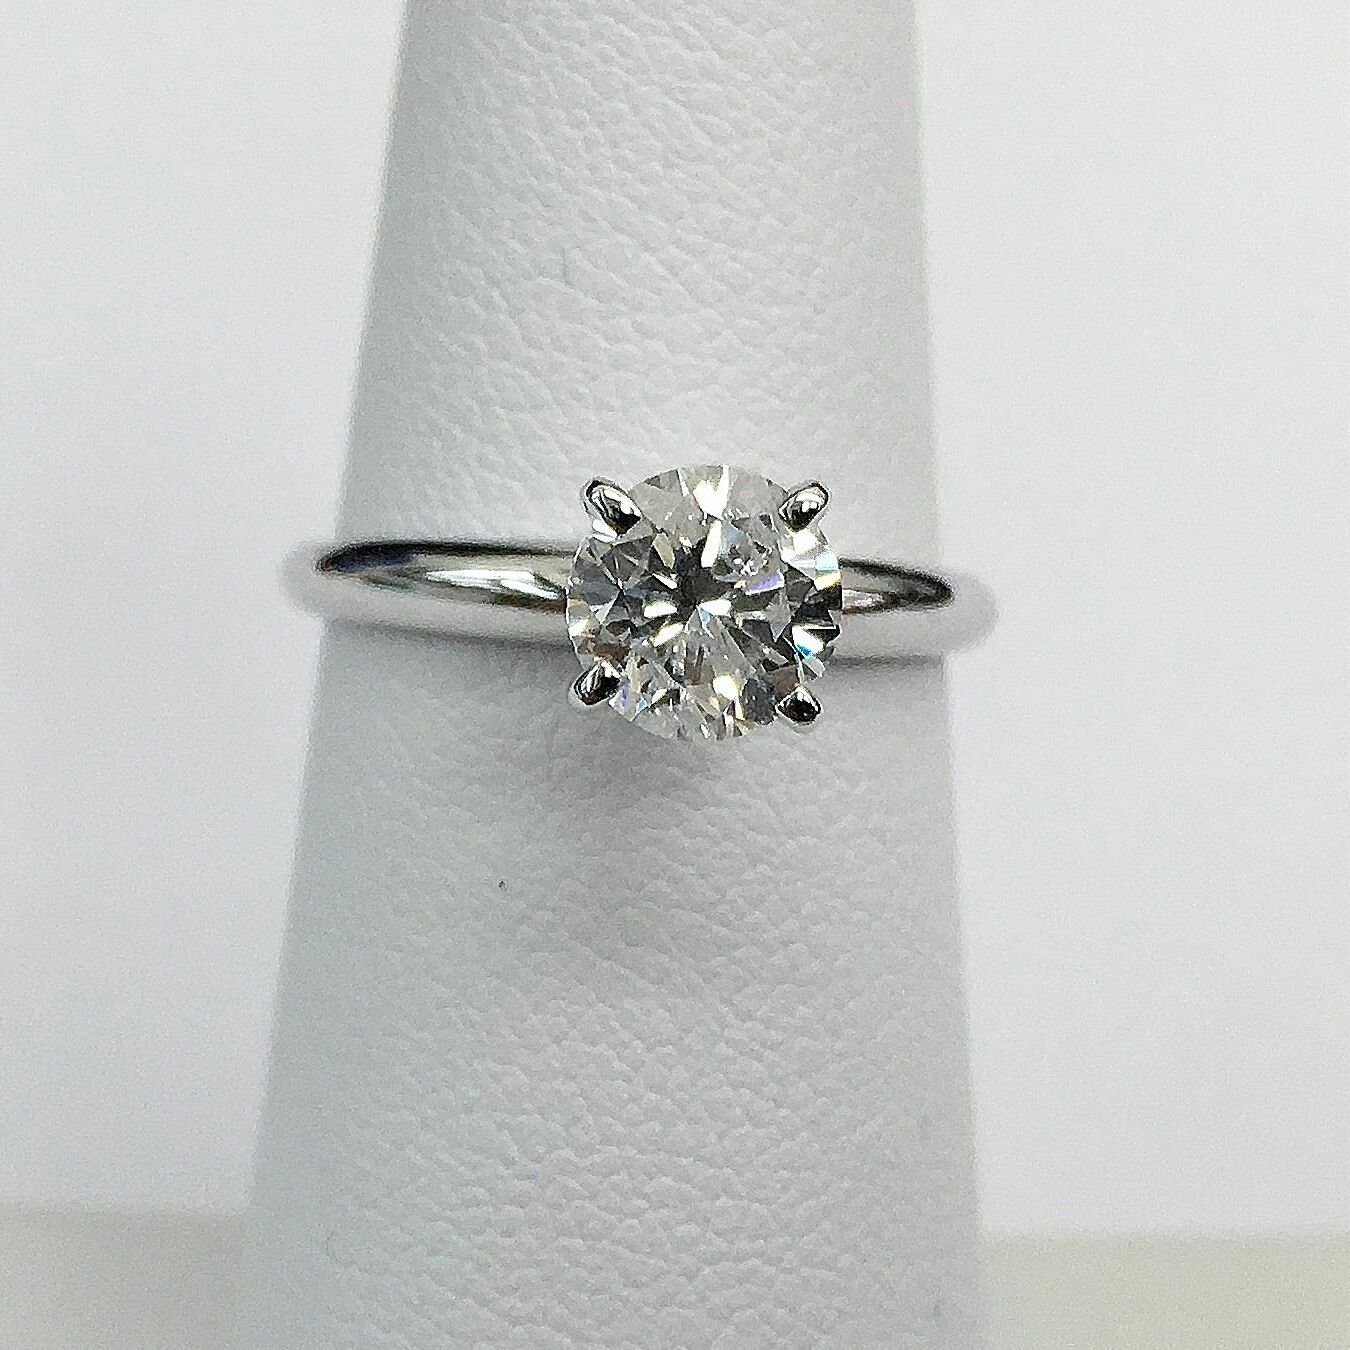 1.01 Carats Diamond Solitaire Wedding/Engagement Ring EGLUSA D-E I1 14K Gold